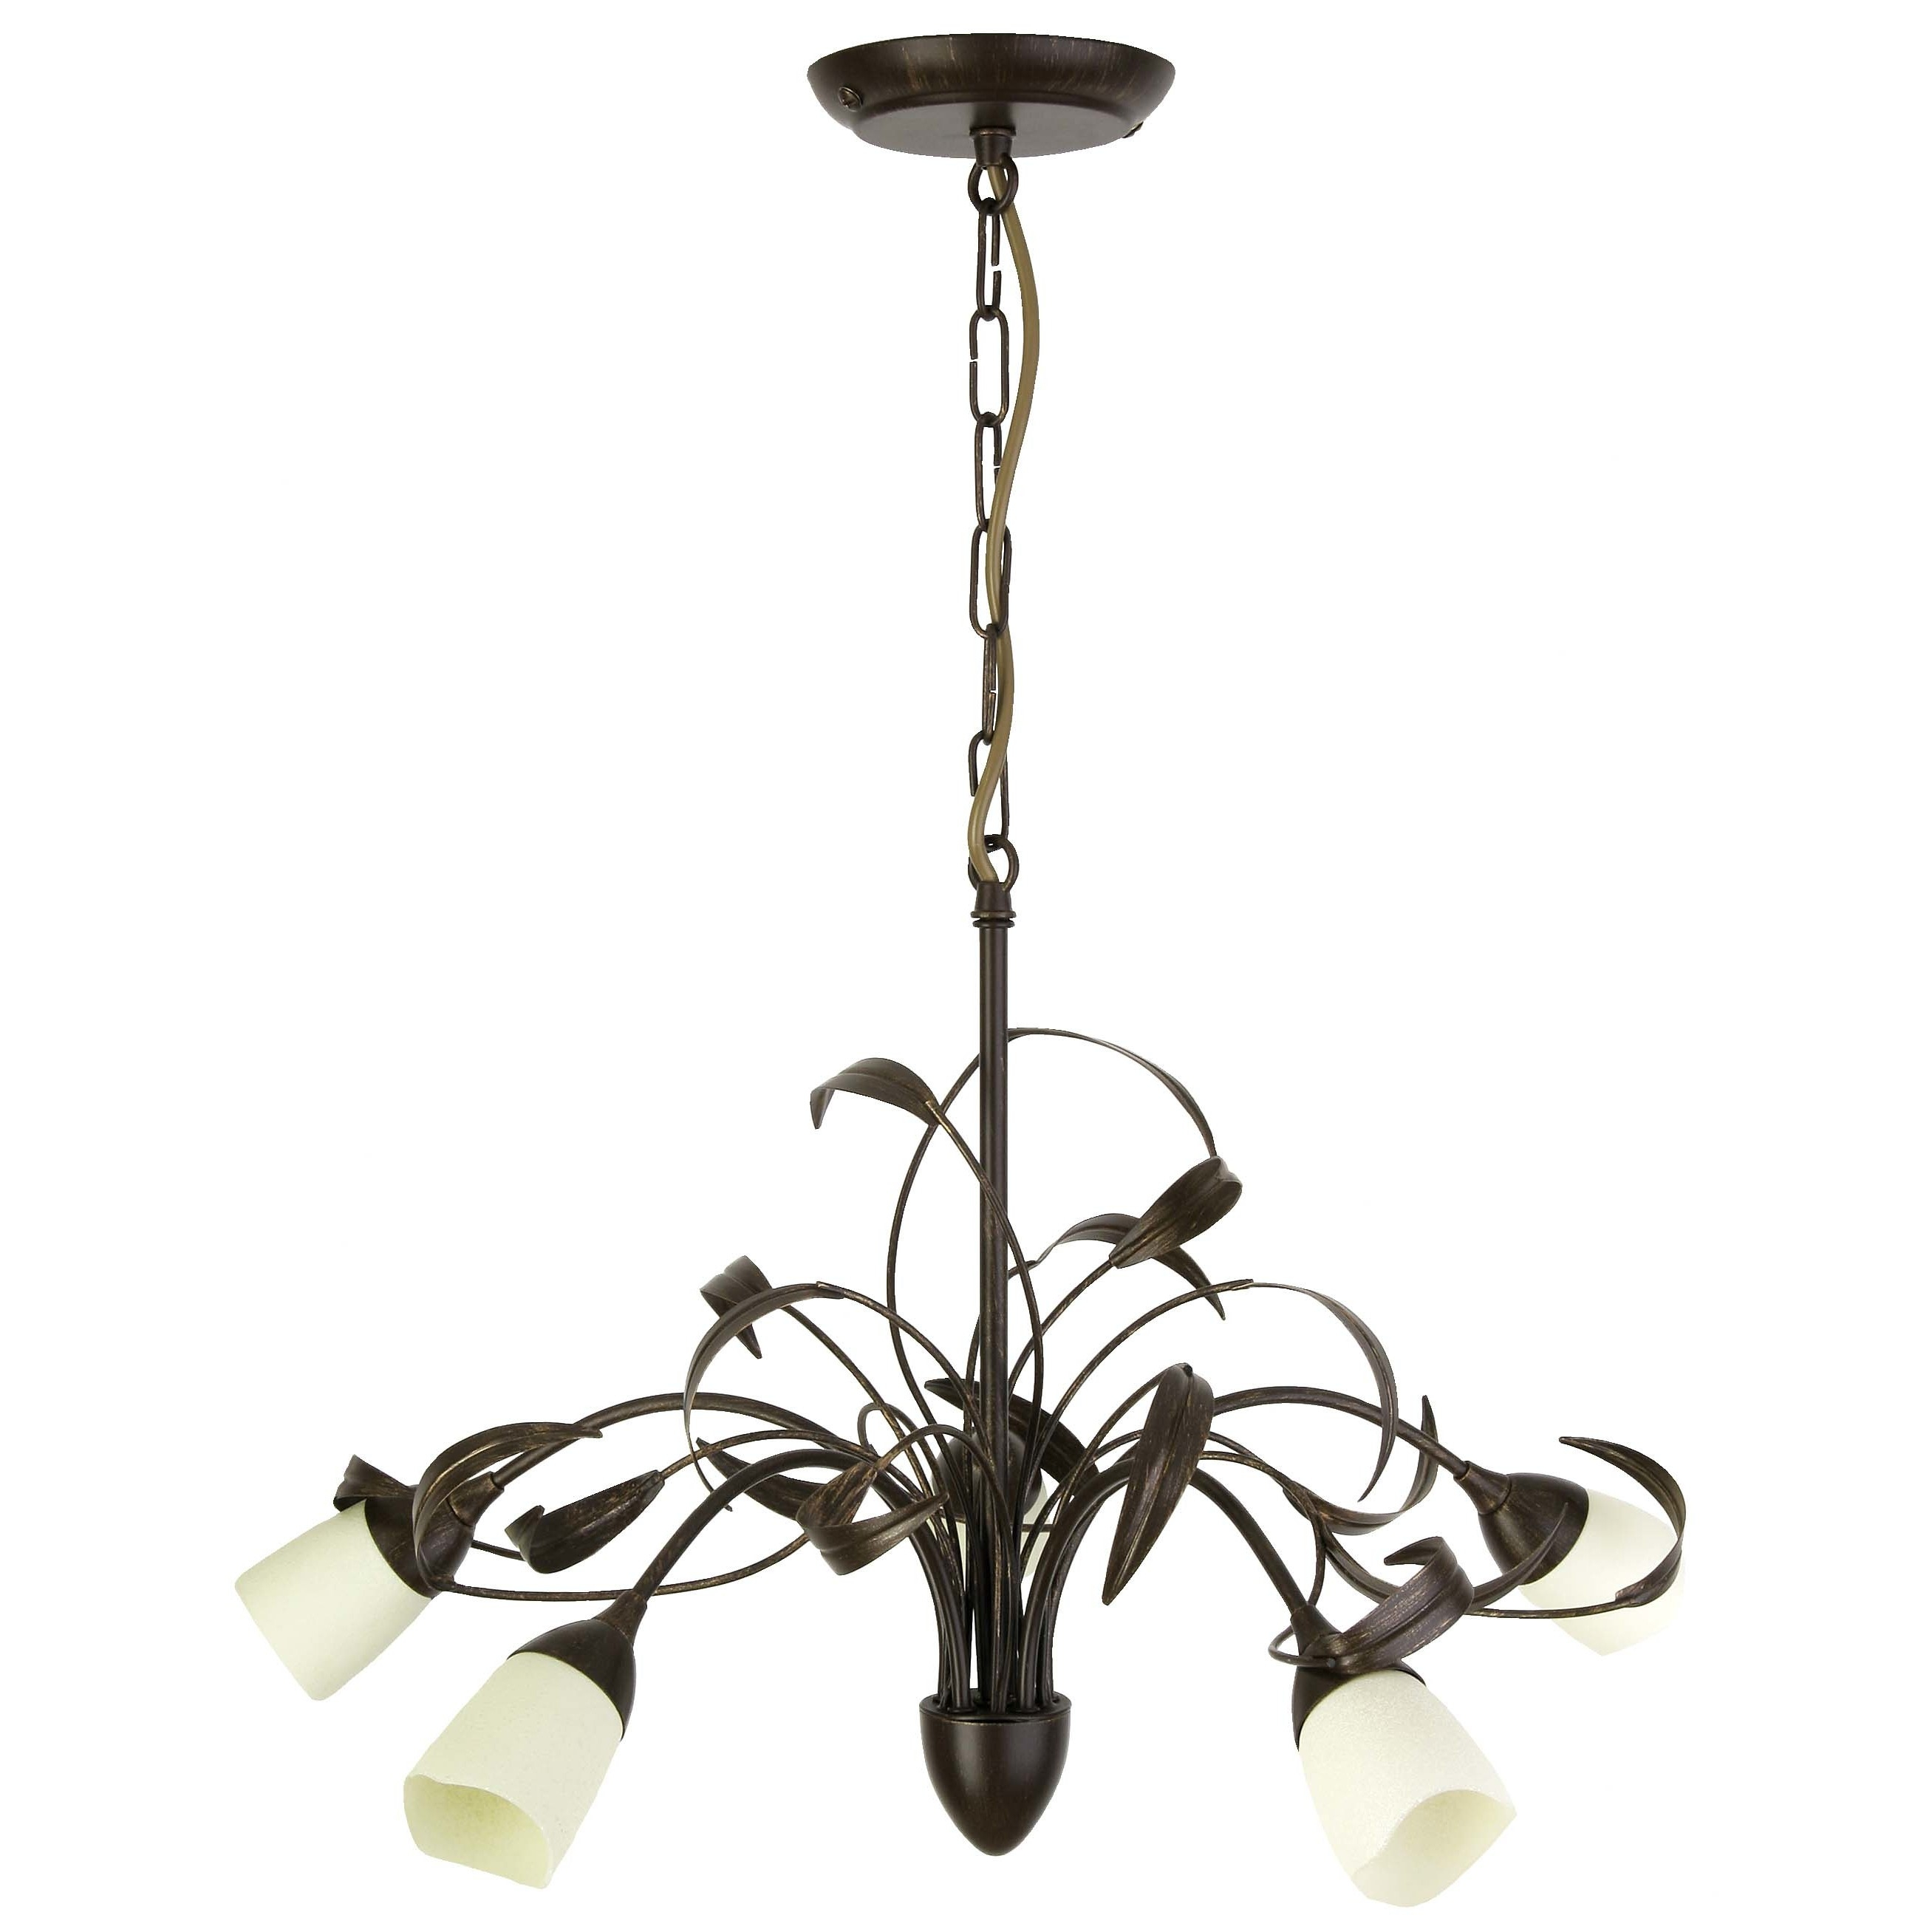 Chandelier Stunning Mirrored Chandelier Pottery Barn Dumont With Mirrored Chandelier (#6 of 12)